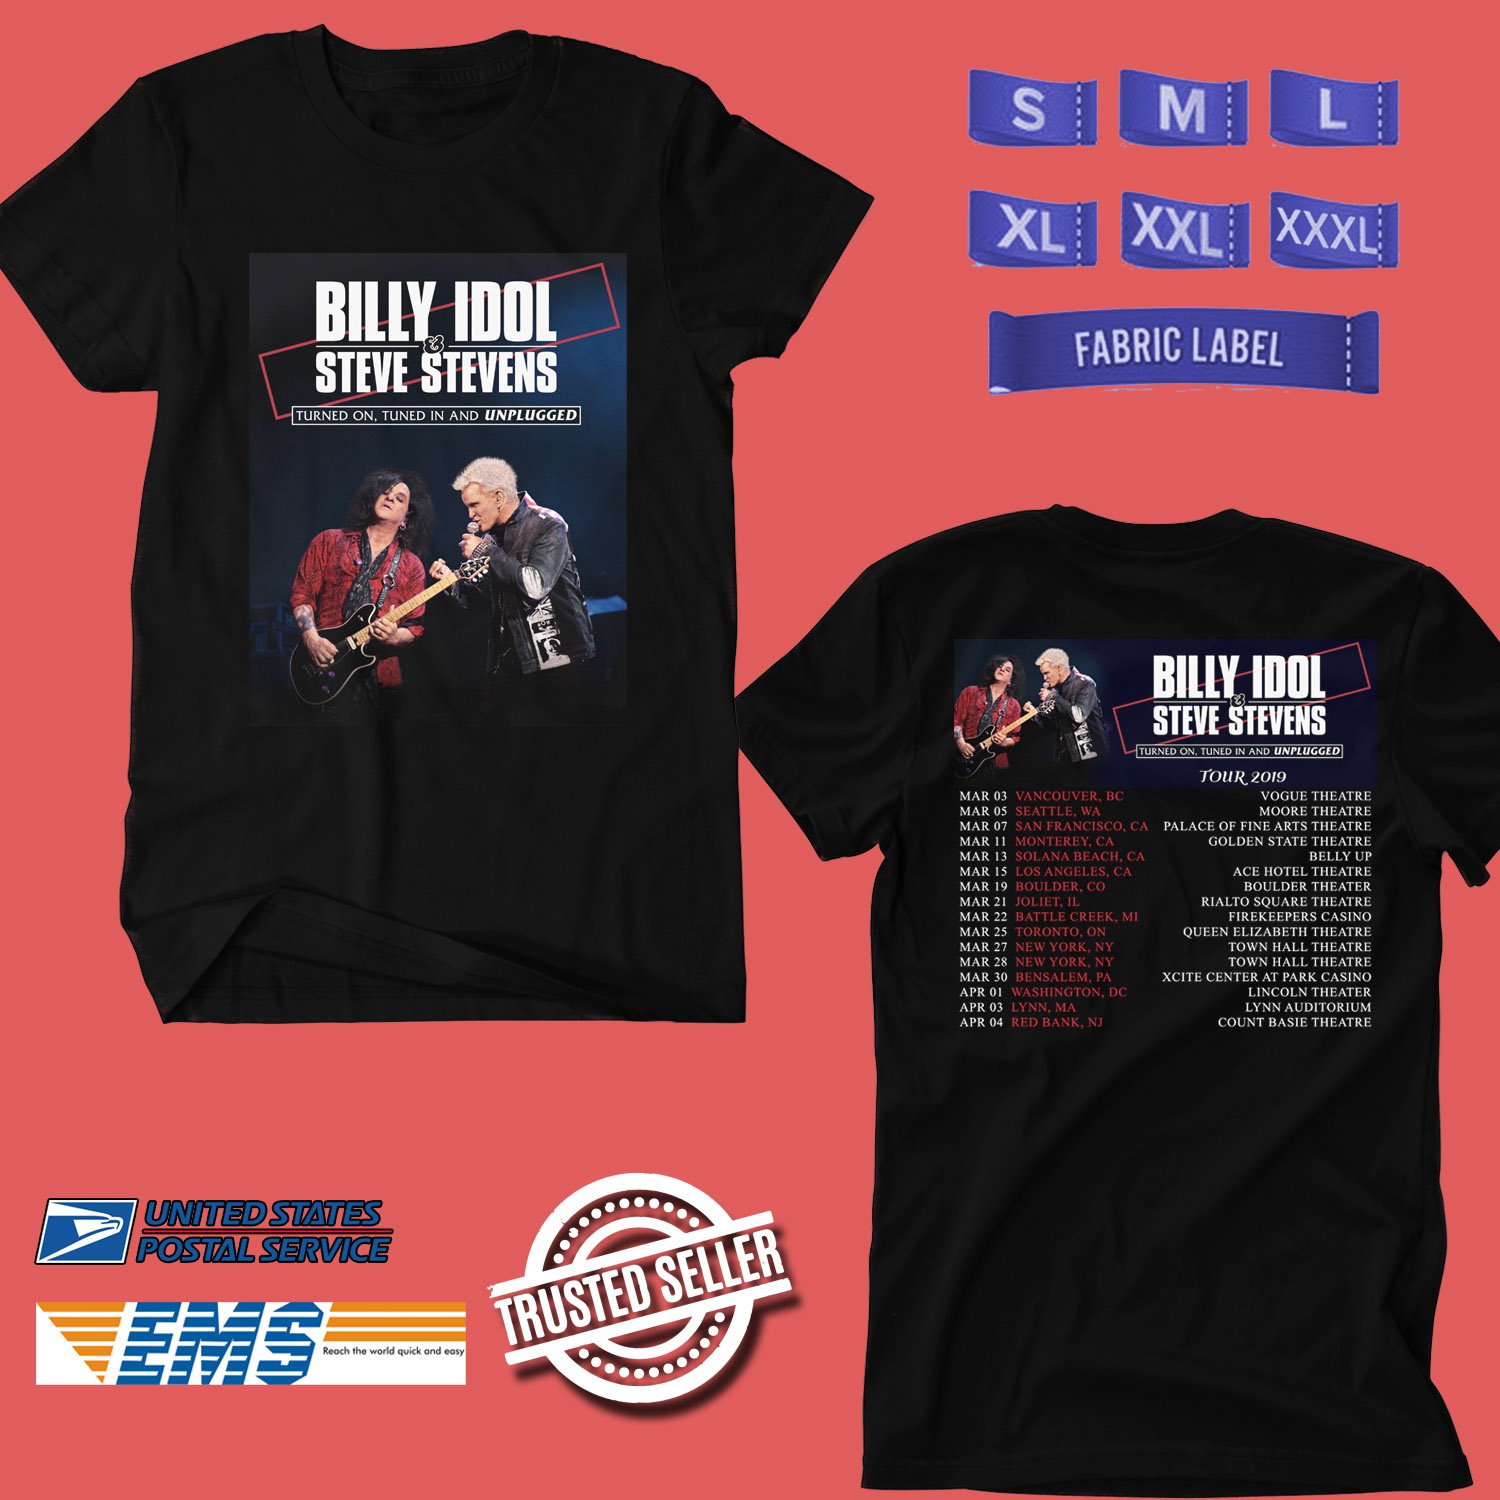 CONCERT 2019 BILLY IDOL AND STEVE STEVENS TURNED ON TUNED IN TOUR BLACK TEE DATES CODE EP03